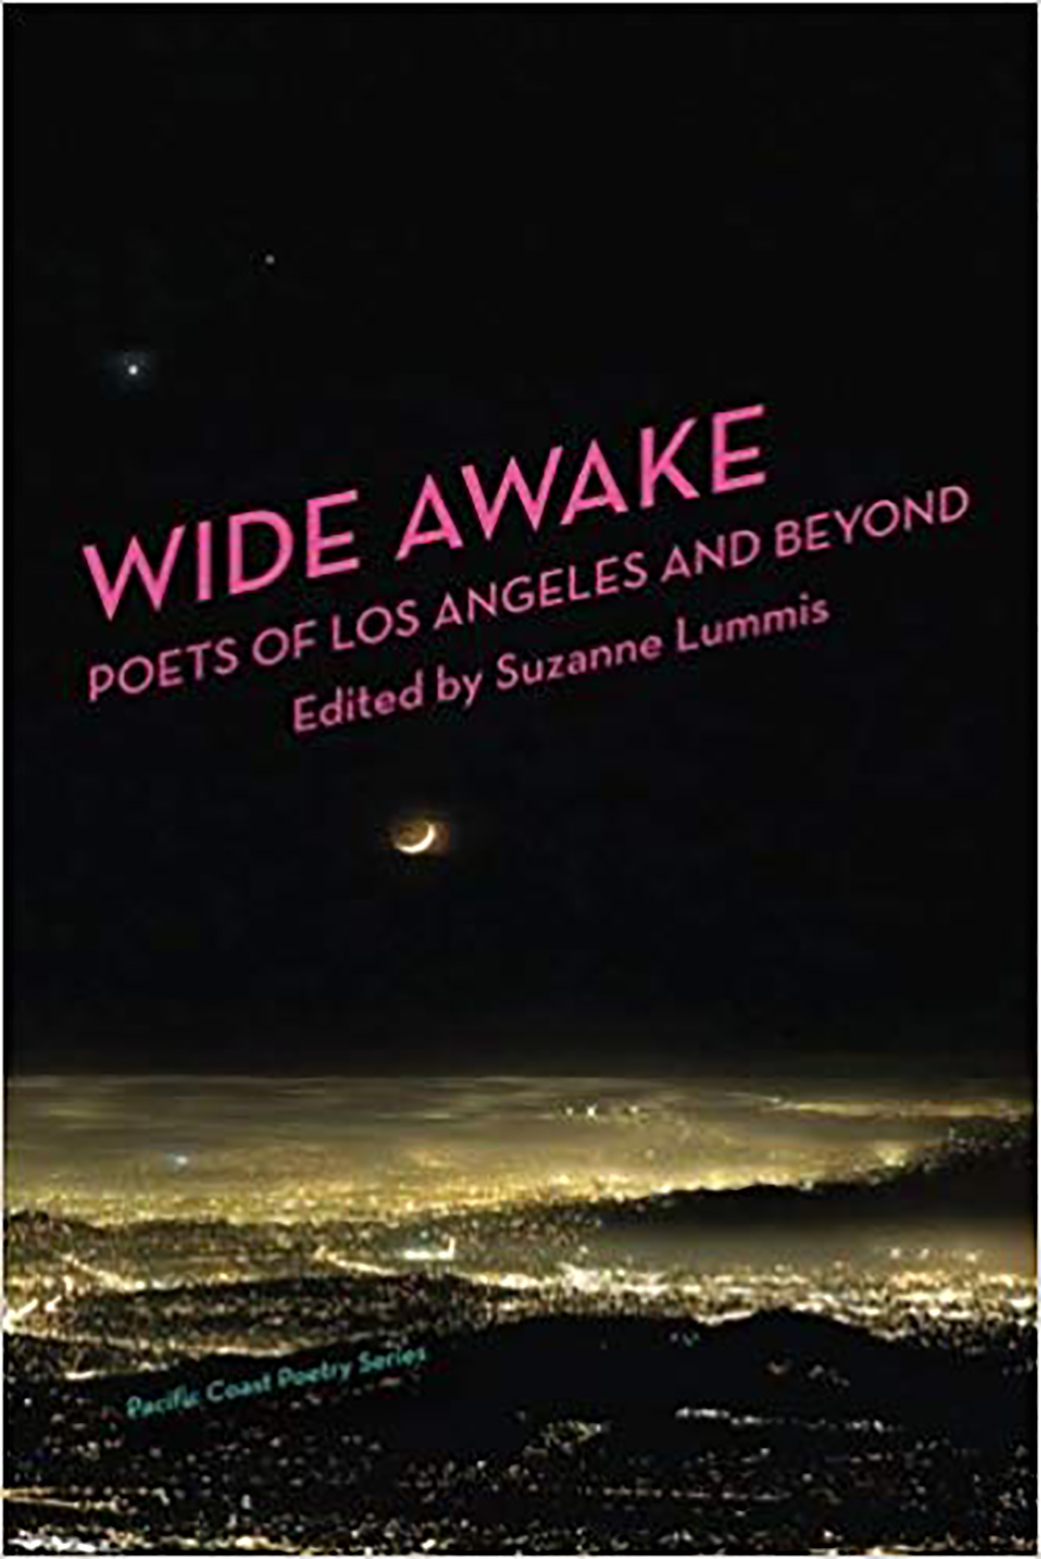 Wide Awake: Poets of Los Angeles and Beyond